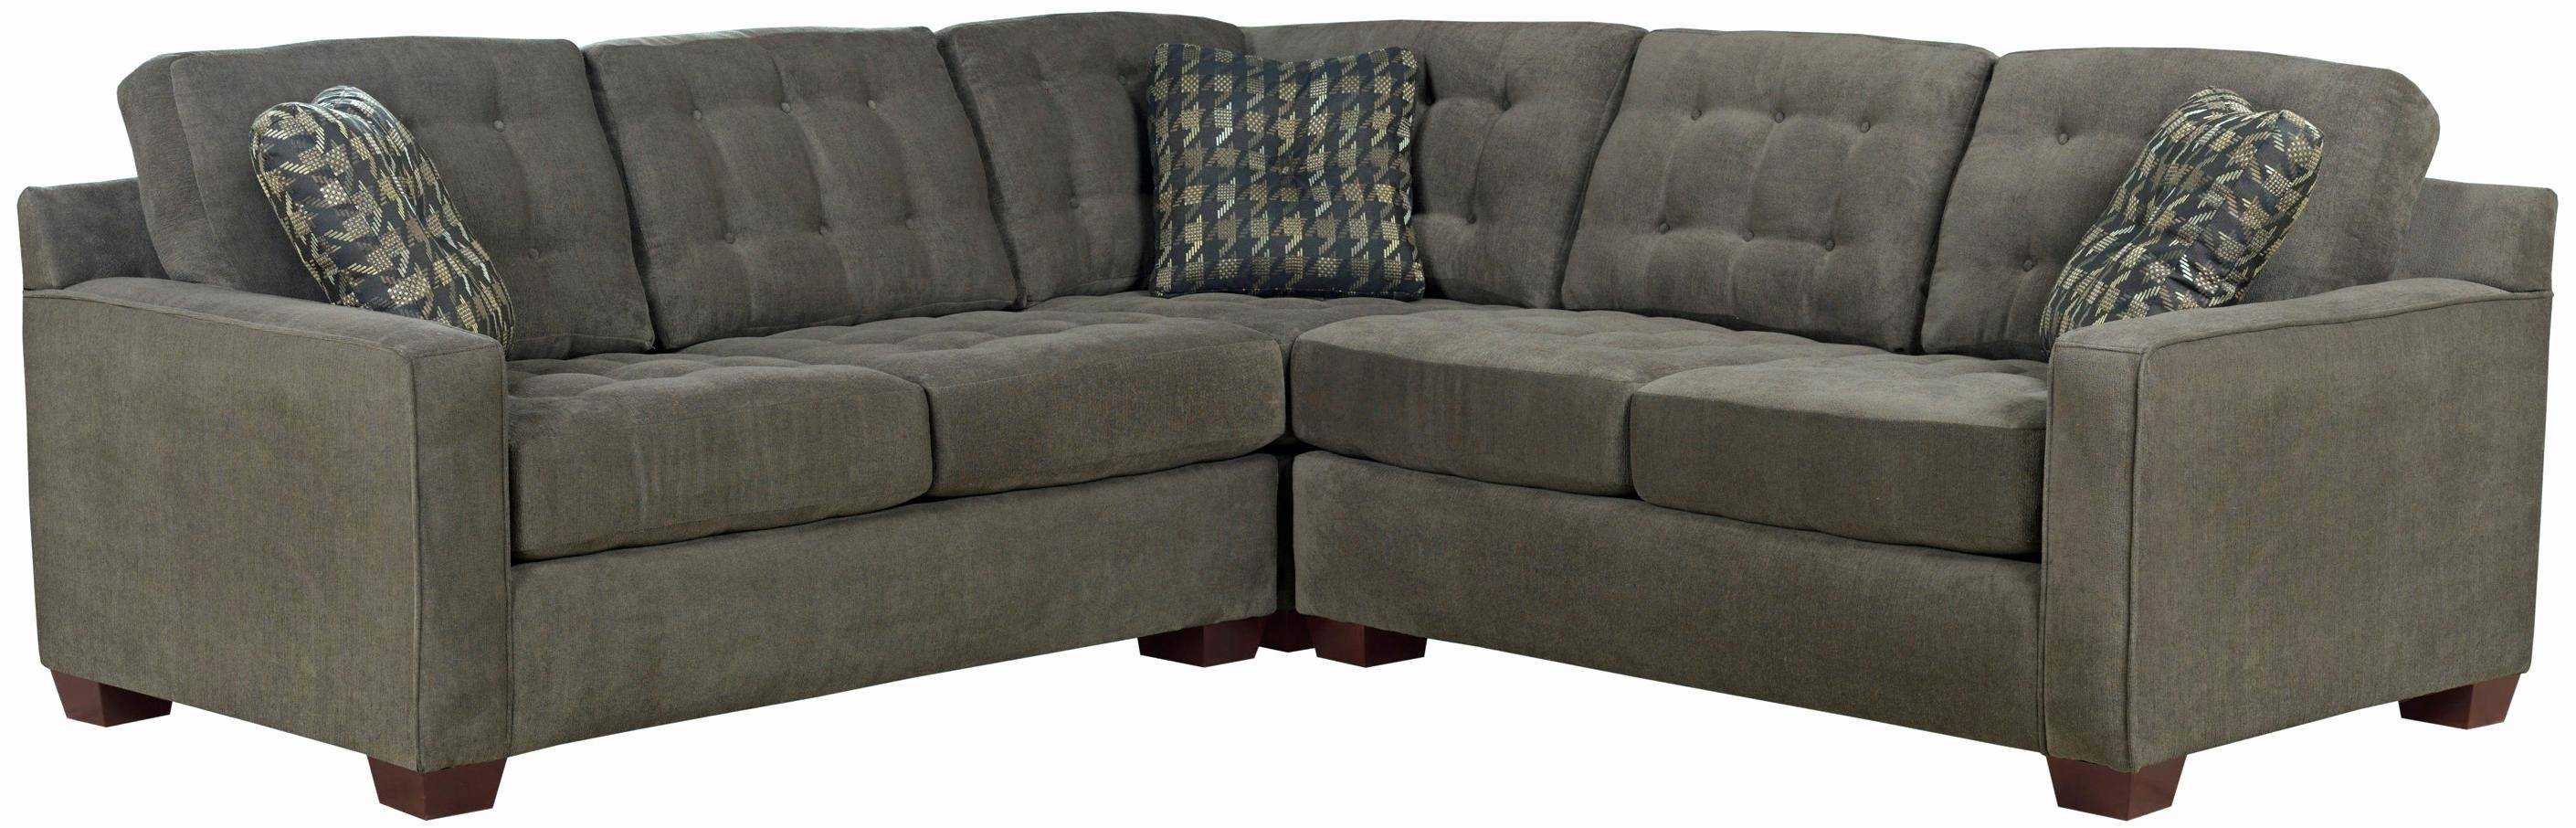 Lovely Contemporary L Shaped Sofa Art Broyhill Furniture Tribeca Throughout Sectional Sofas At Broyhill (Image 9 of 10)